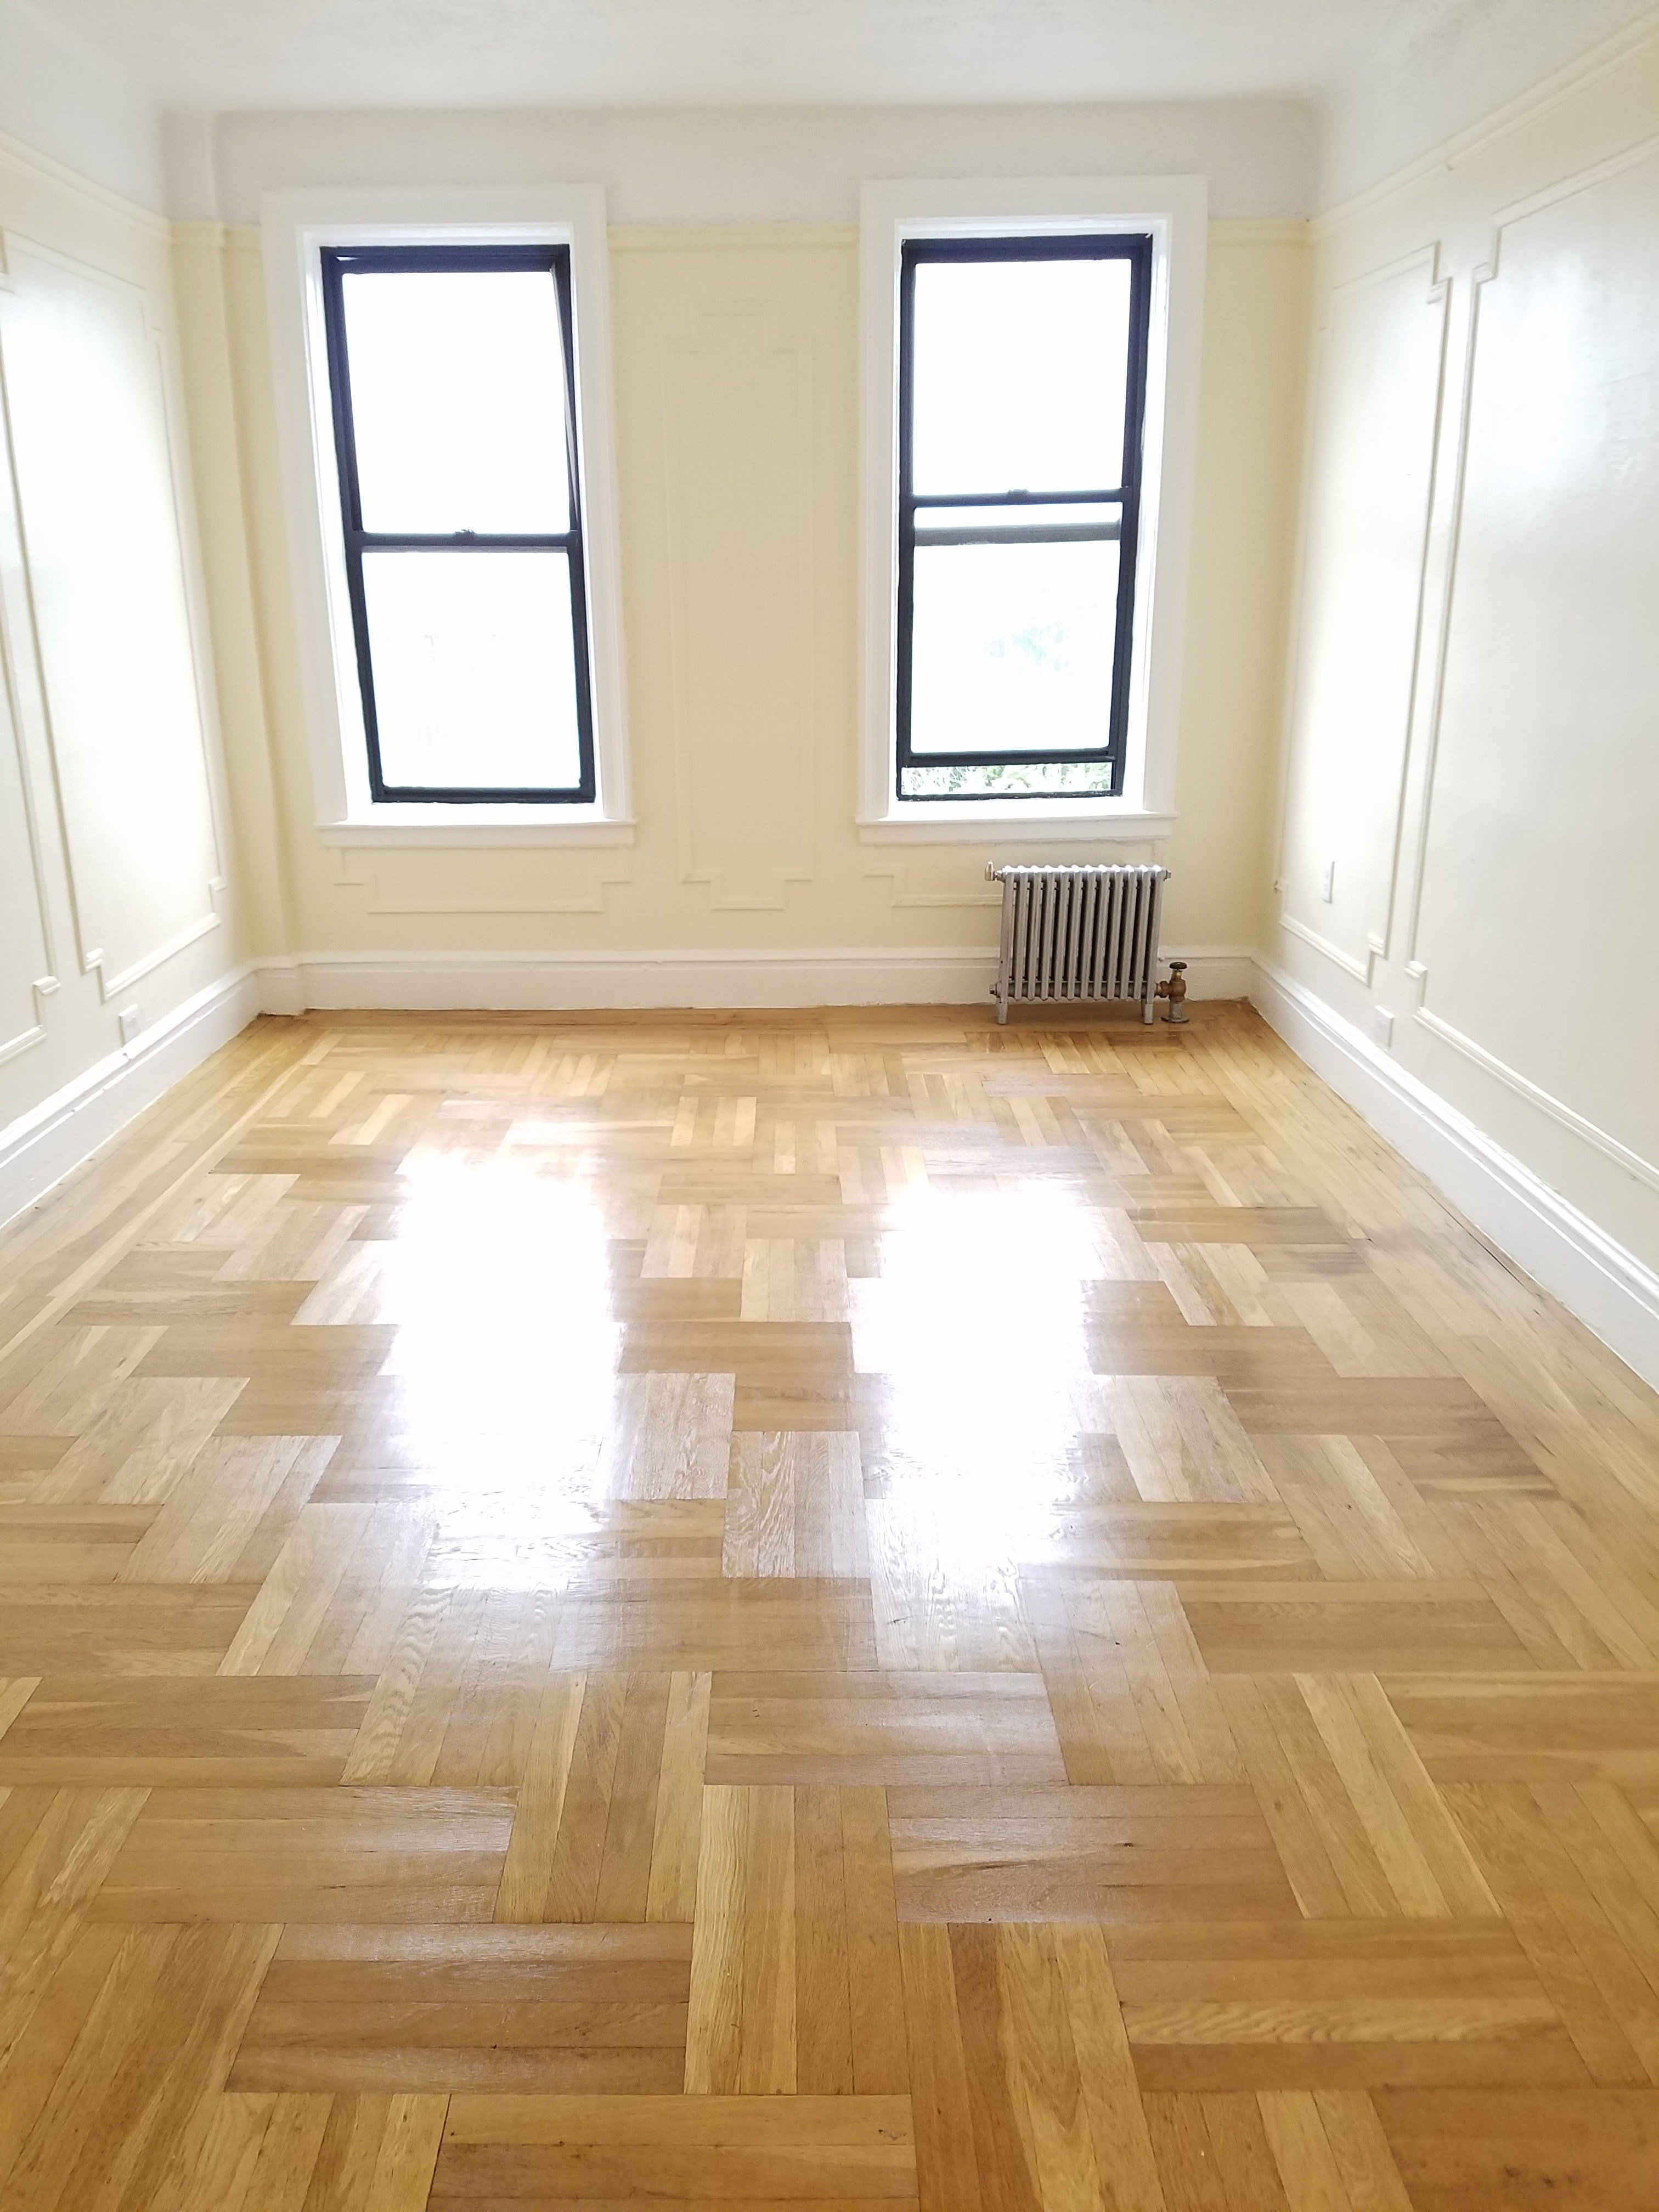 Best Bailey Ave Bronx Ny 10463 1 Bedroom Apartment For Rent With Pictures